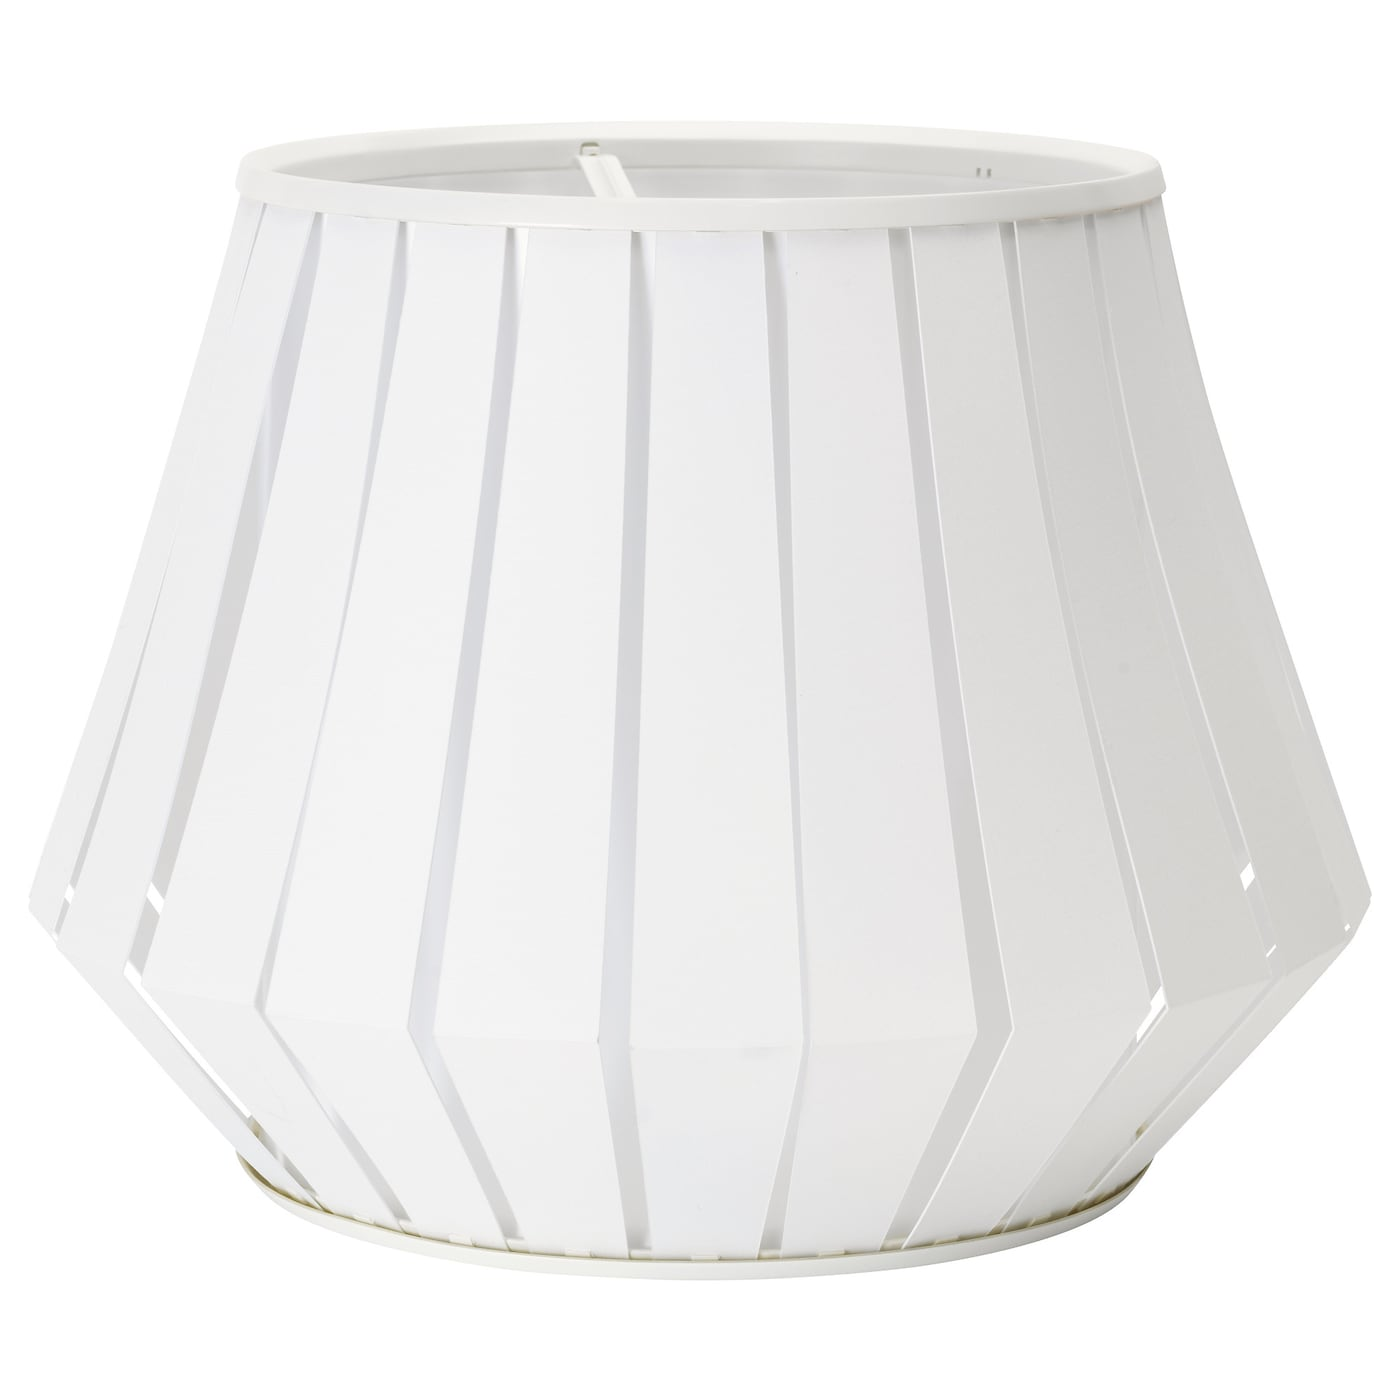 Light fittings ceiling light shades ikea ikea lakheden lamp shade aloadofball Image collections